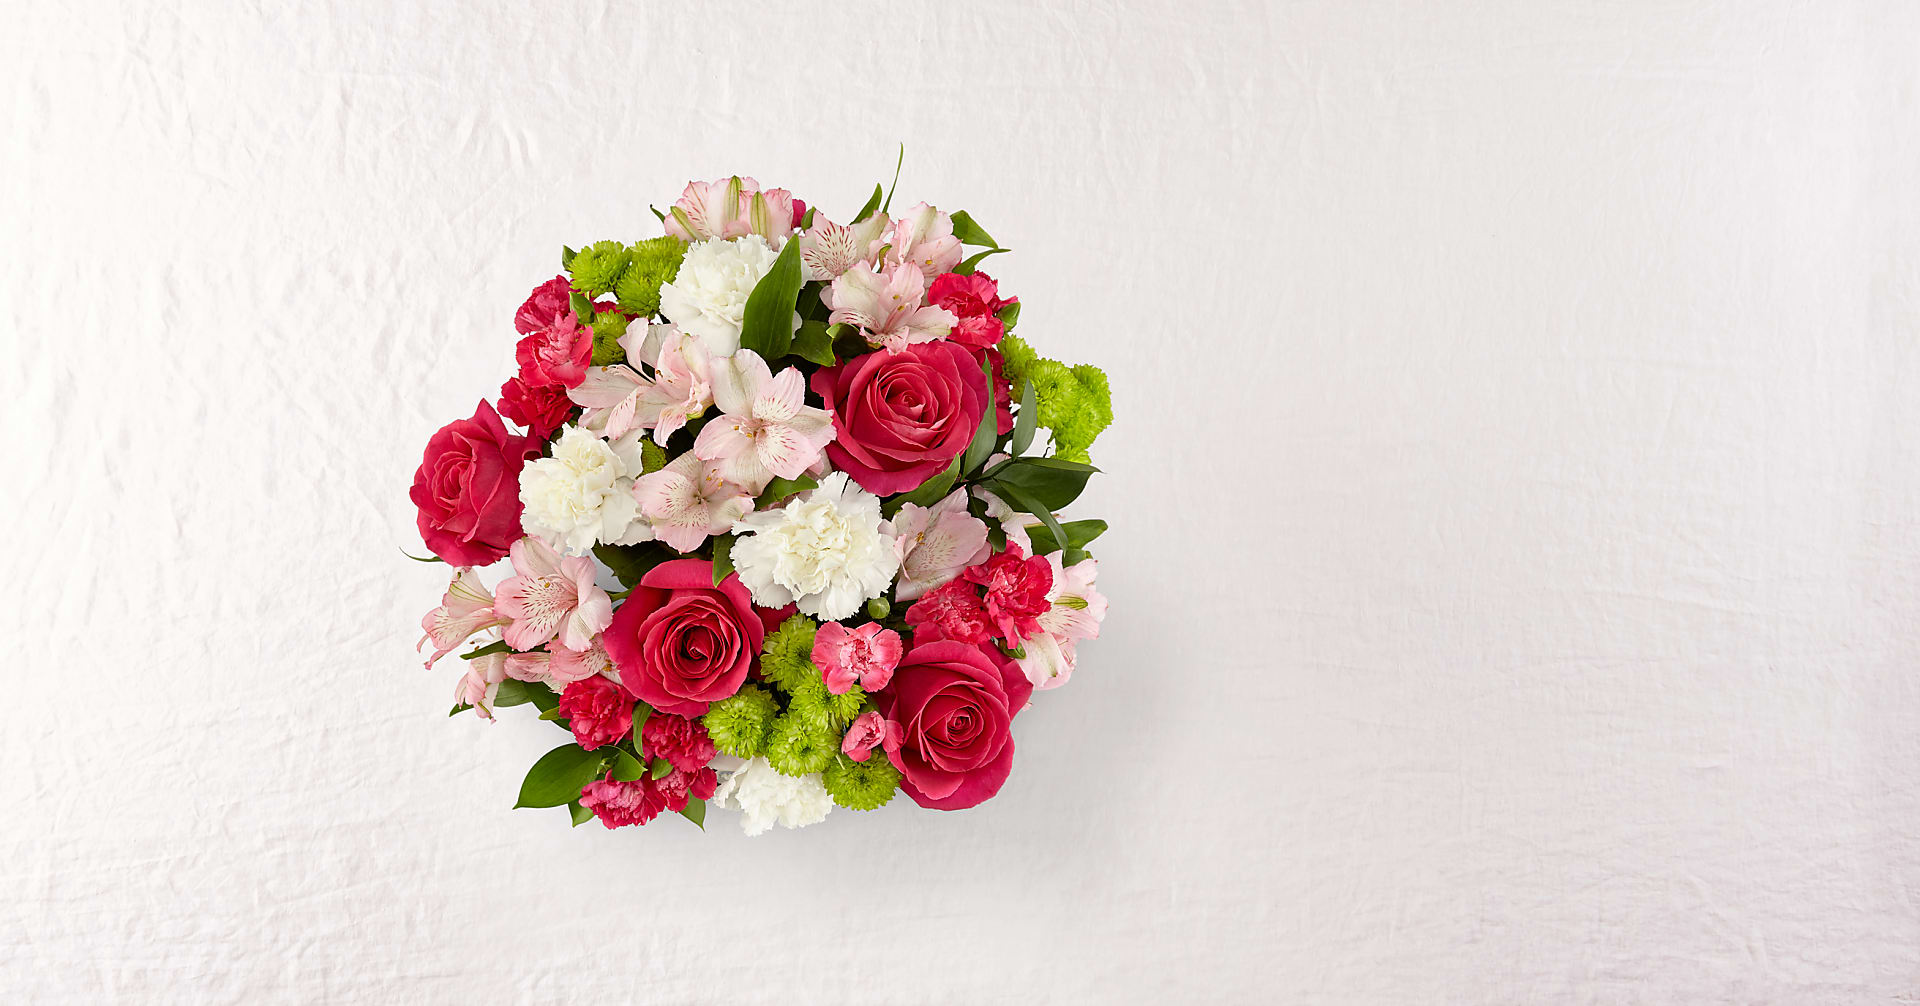 Sweet & Pretty Bouquet - Image 2 Of 4